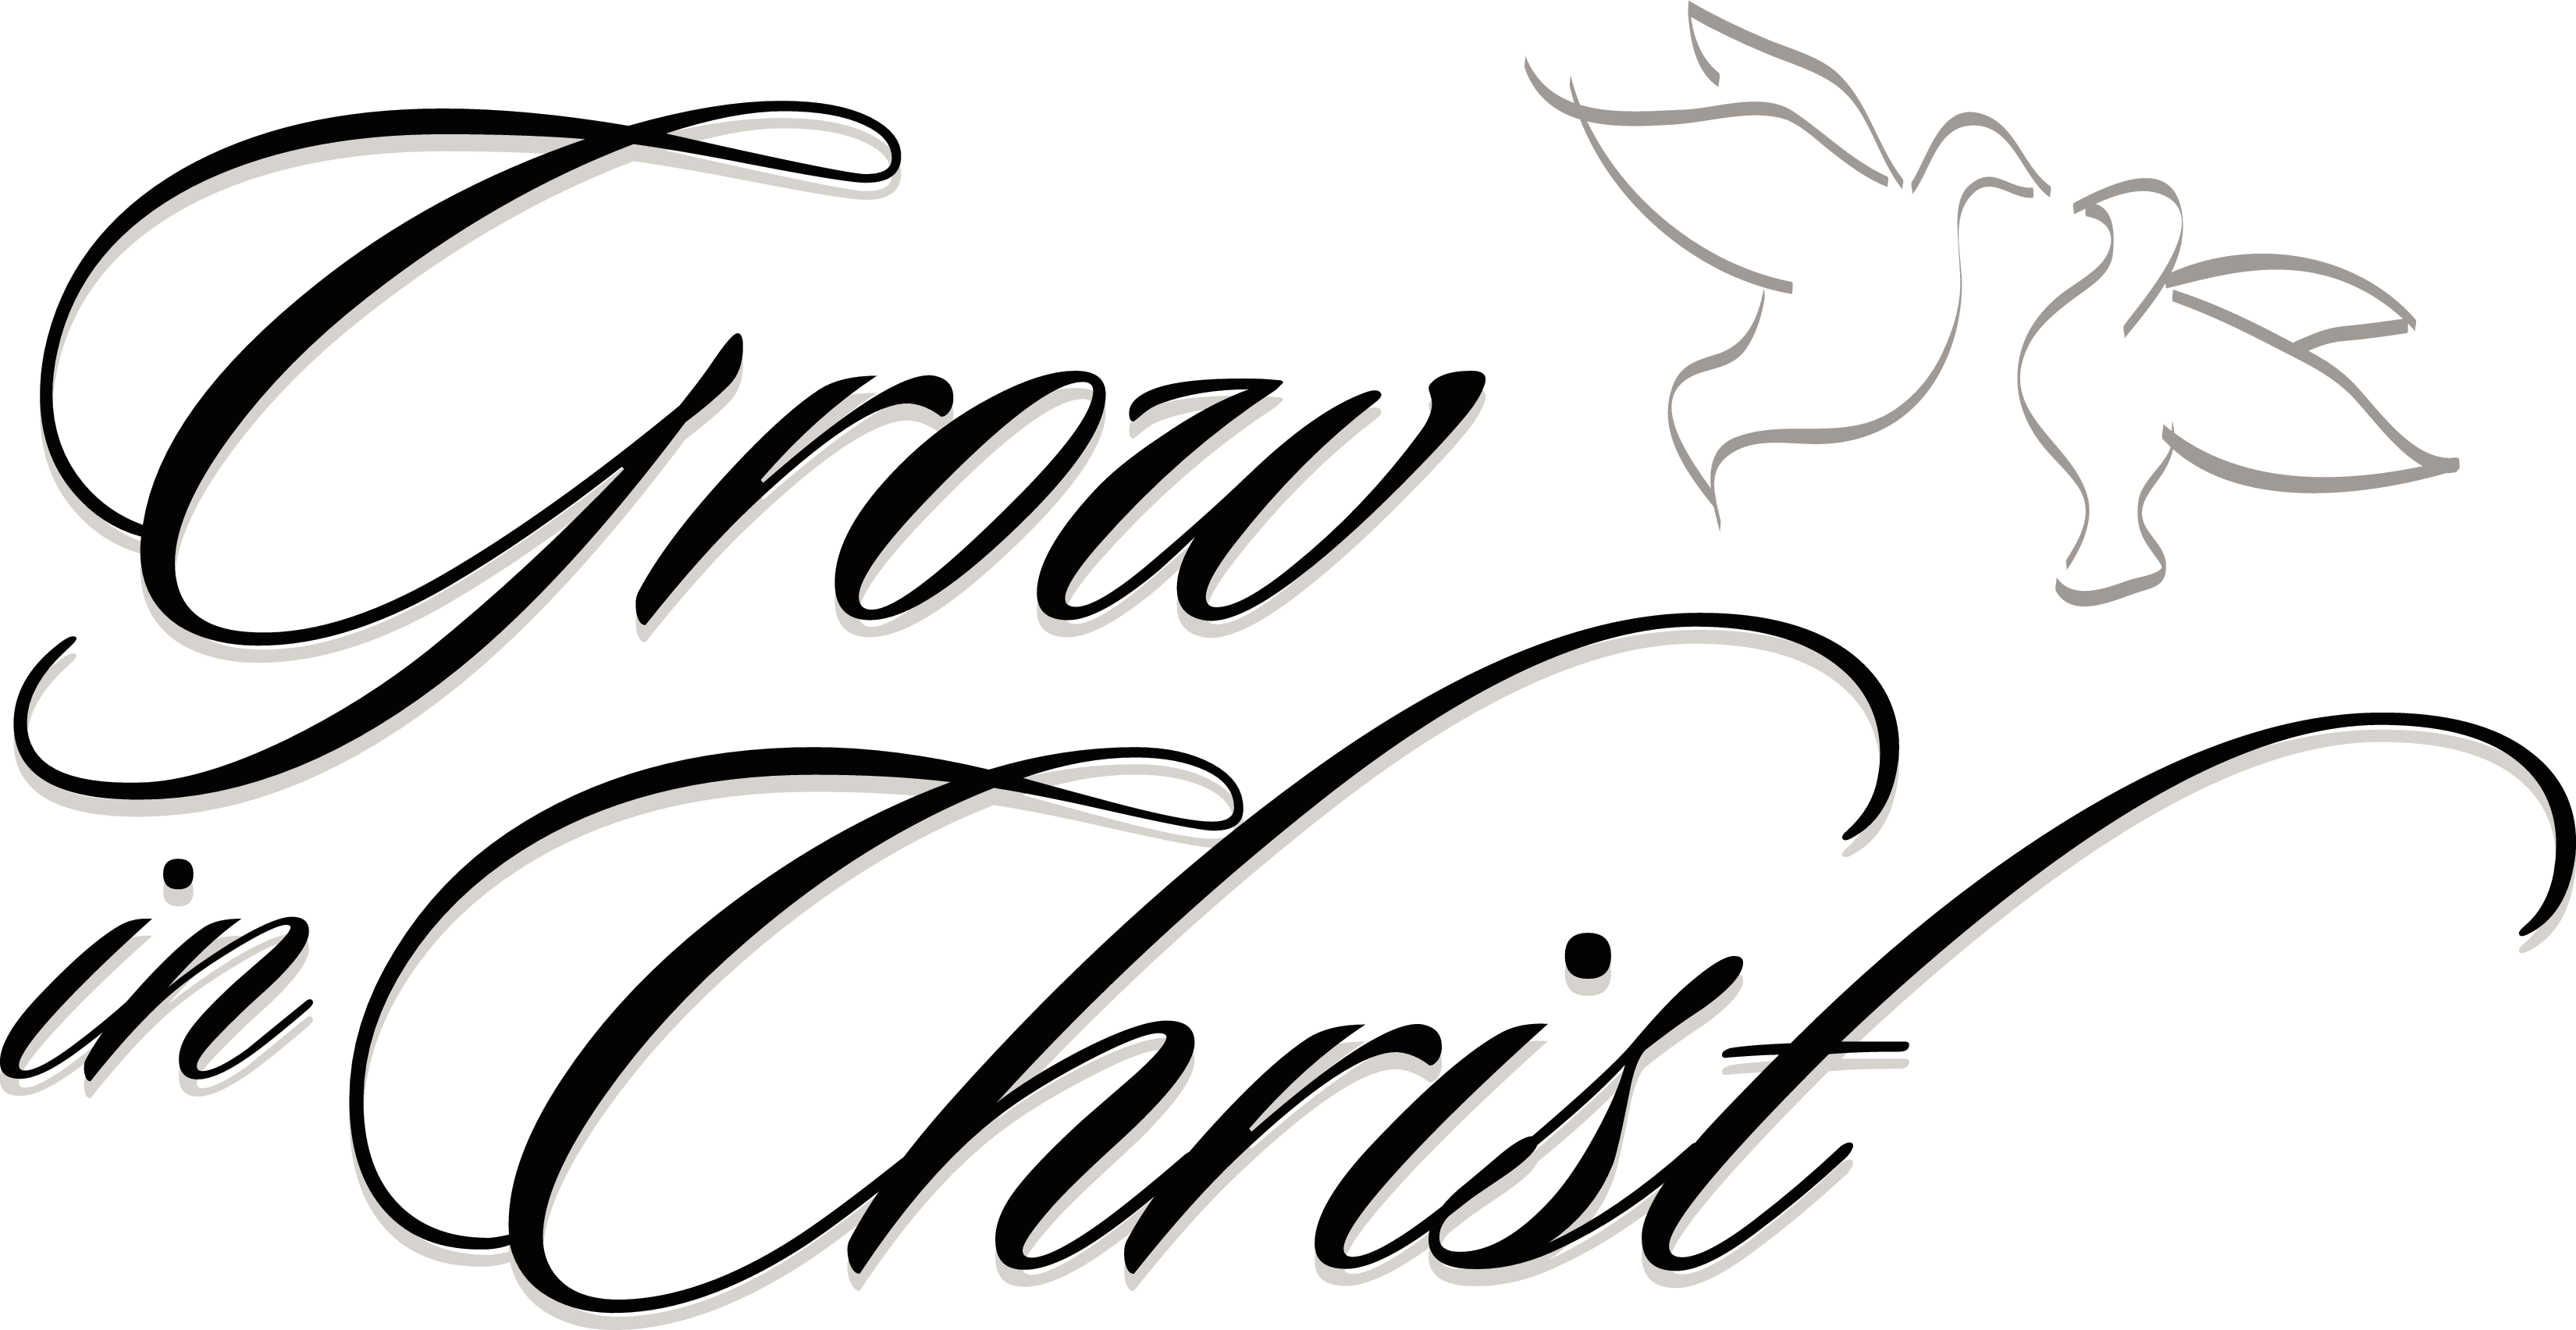 collection of christian. Music clipart religious